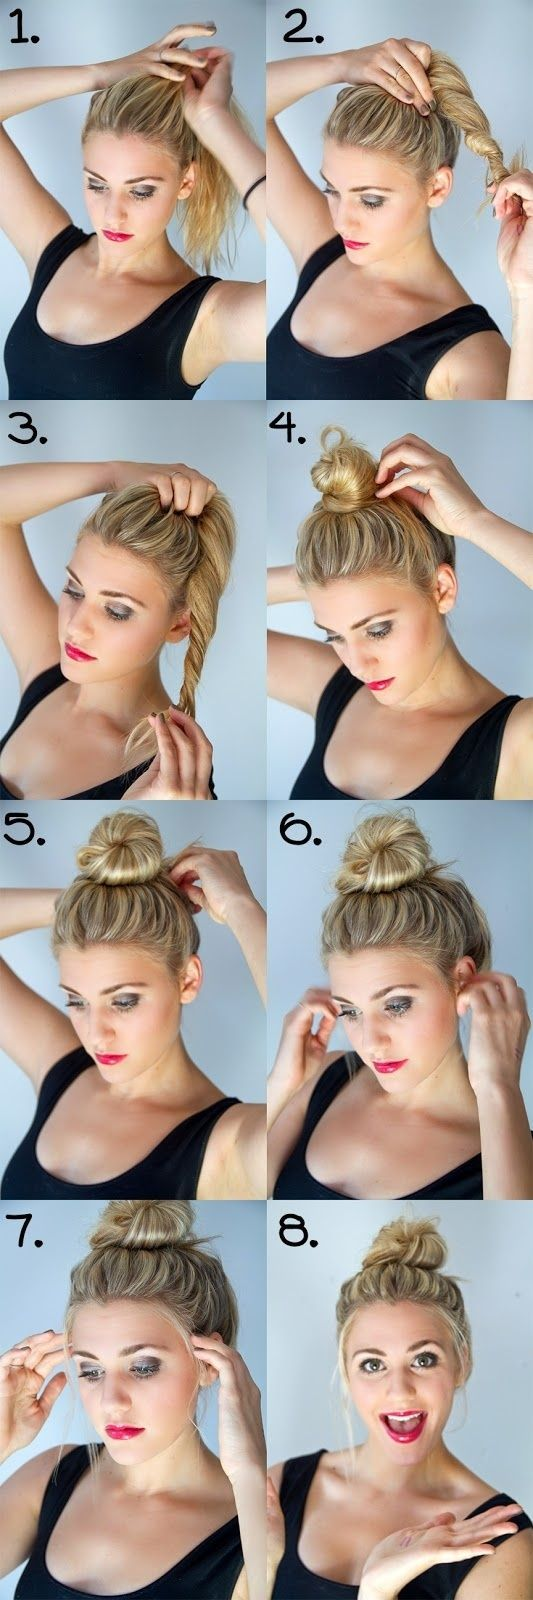 Can't wait to try these beach hairstyles!